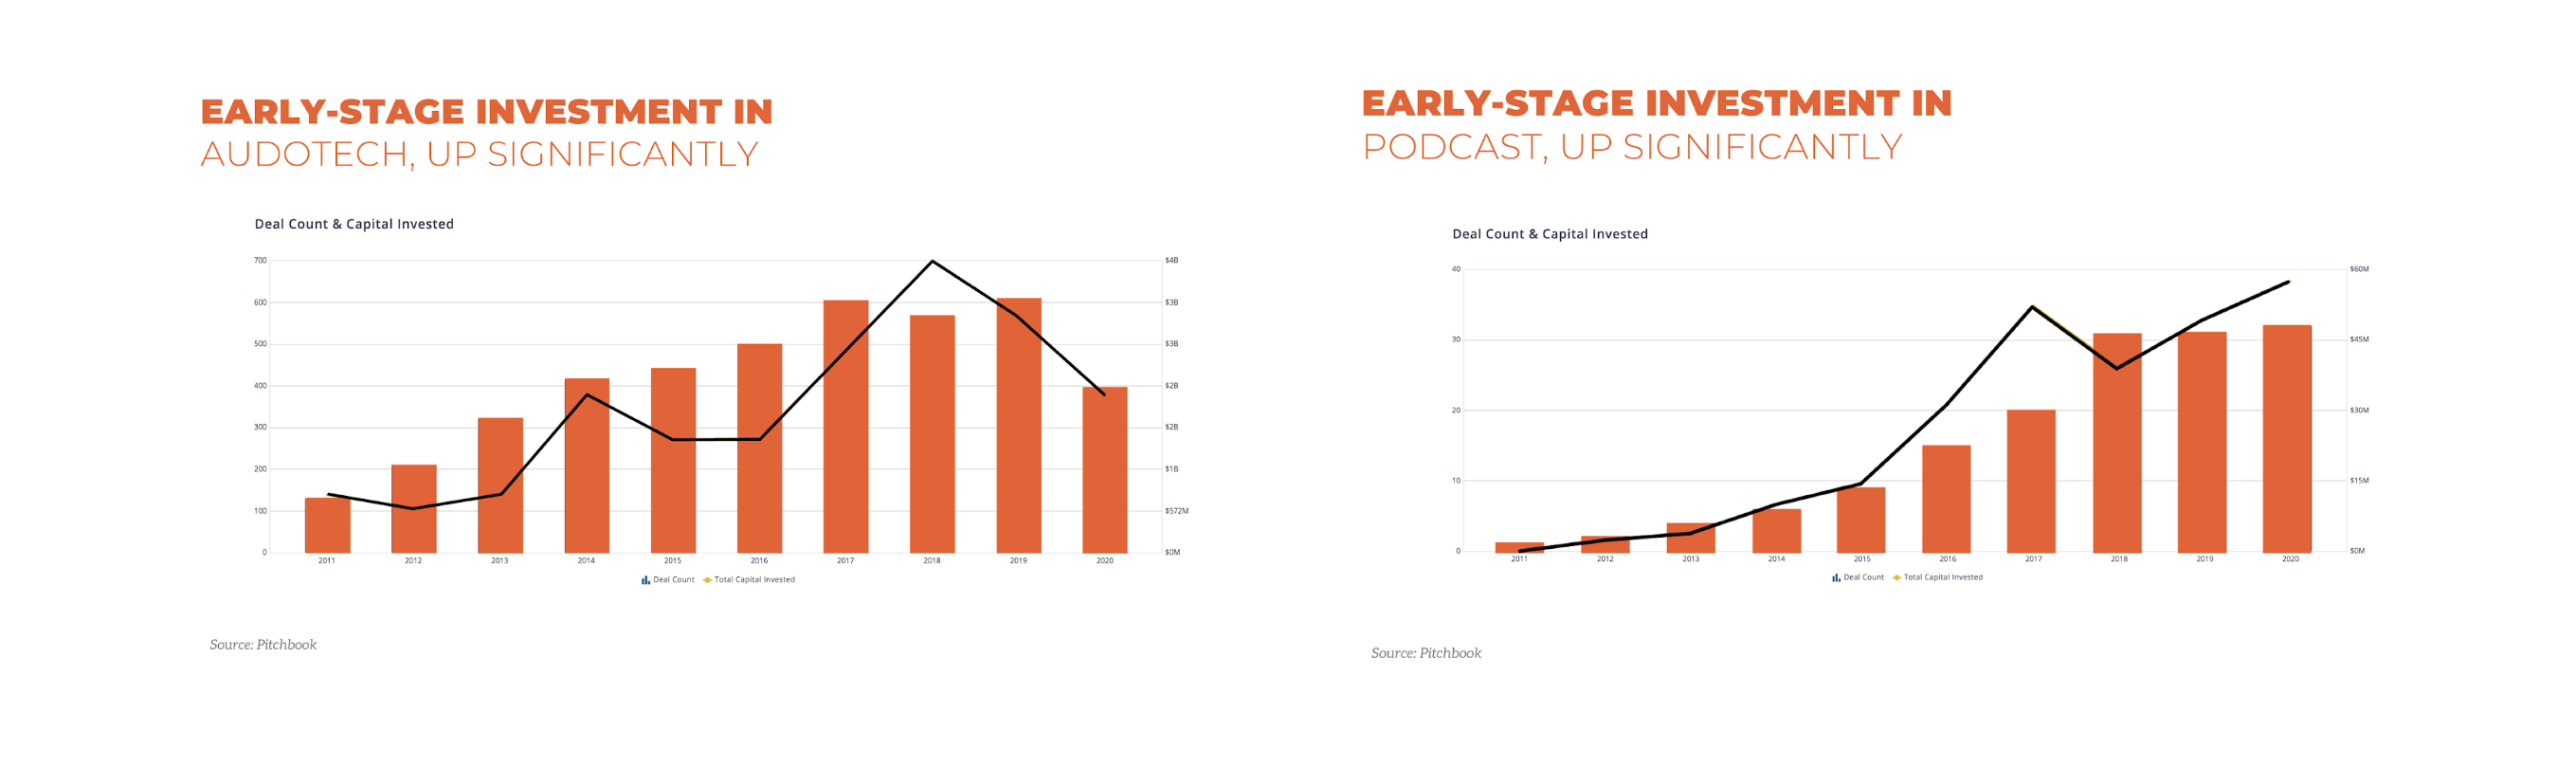 Graph of early-stage investment in audiotech